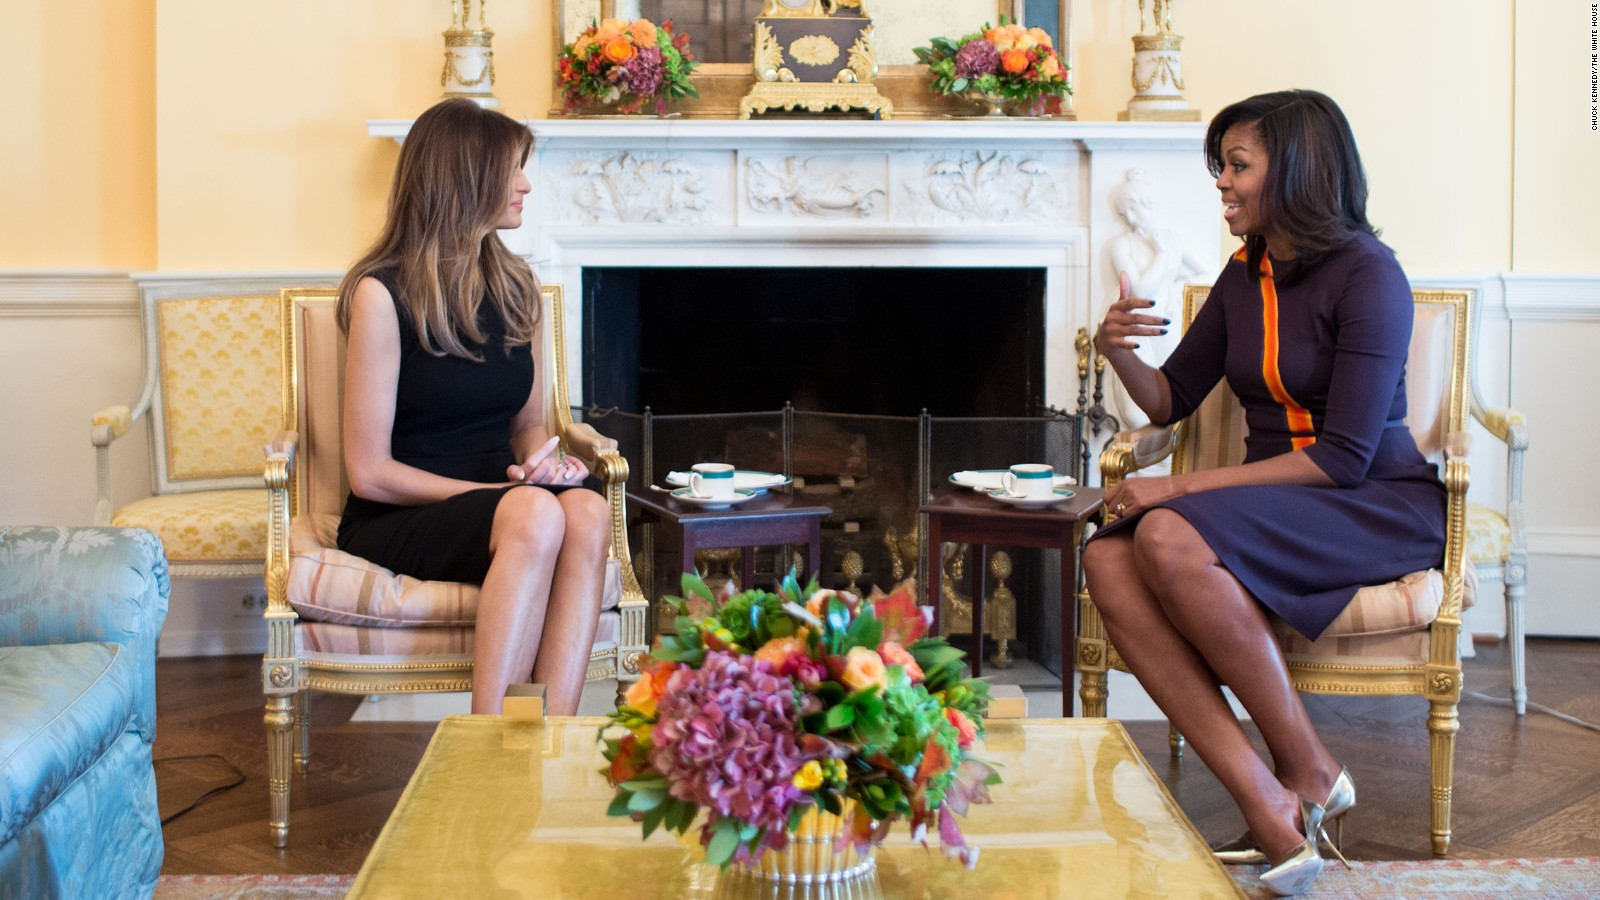 http://i2.cdn.cnn.com/cnnnext/dam/assets/161110172804-michelle-obama-melania-trump-1110-full-169.jpg